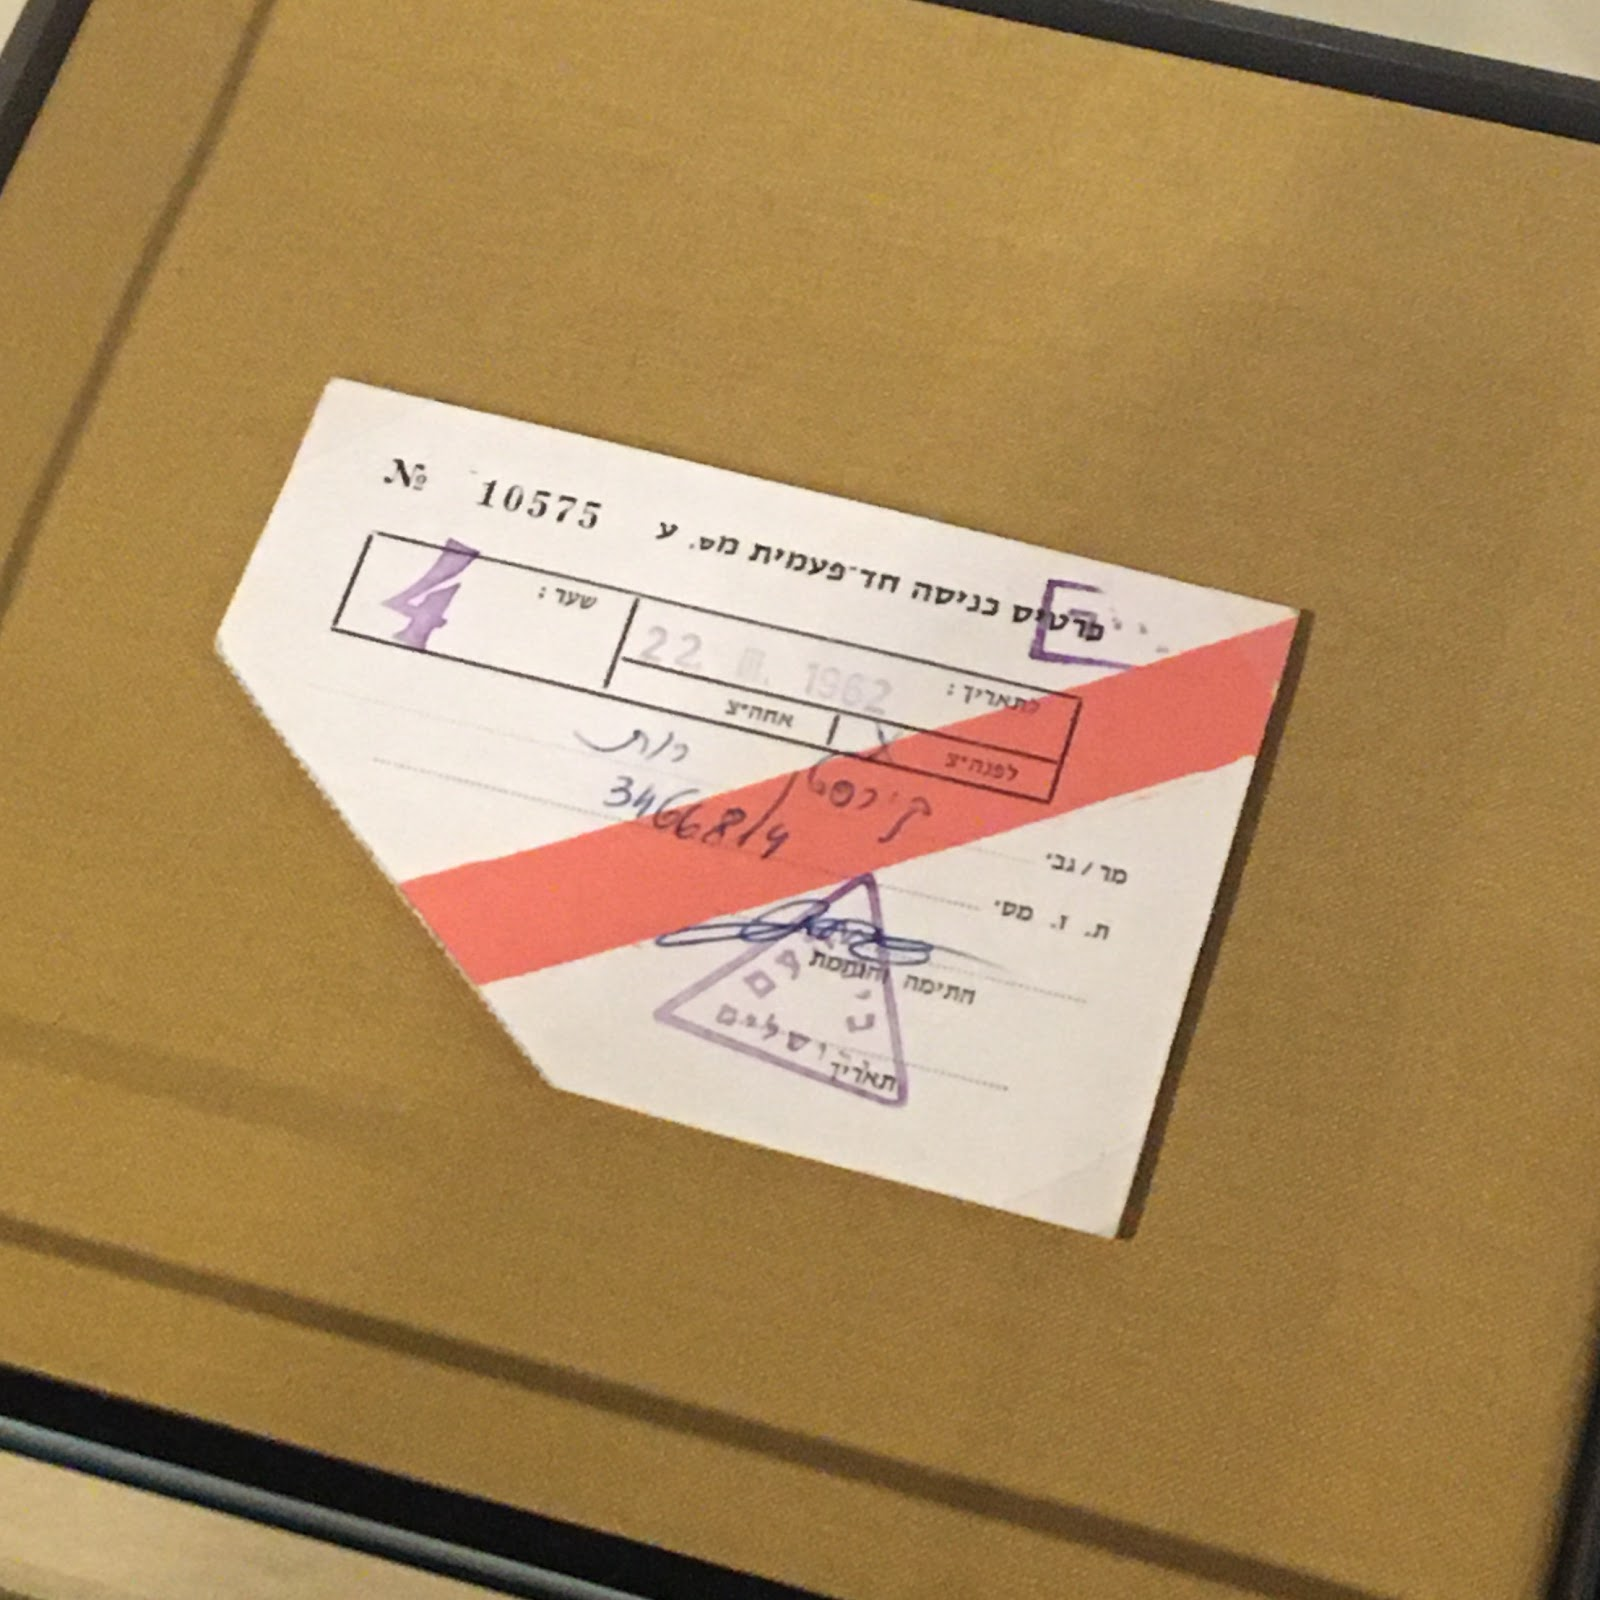 Deutsches Historisches Museum Hannah Arendt ticket to Eichmann trial